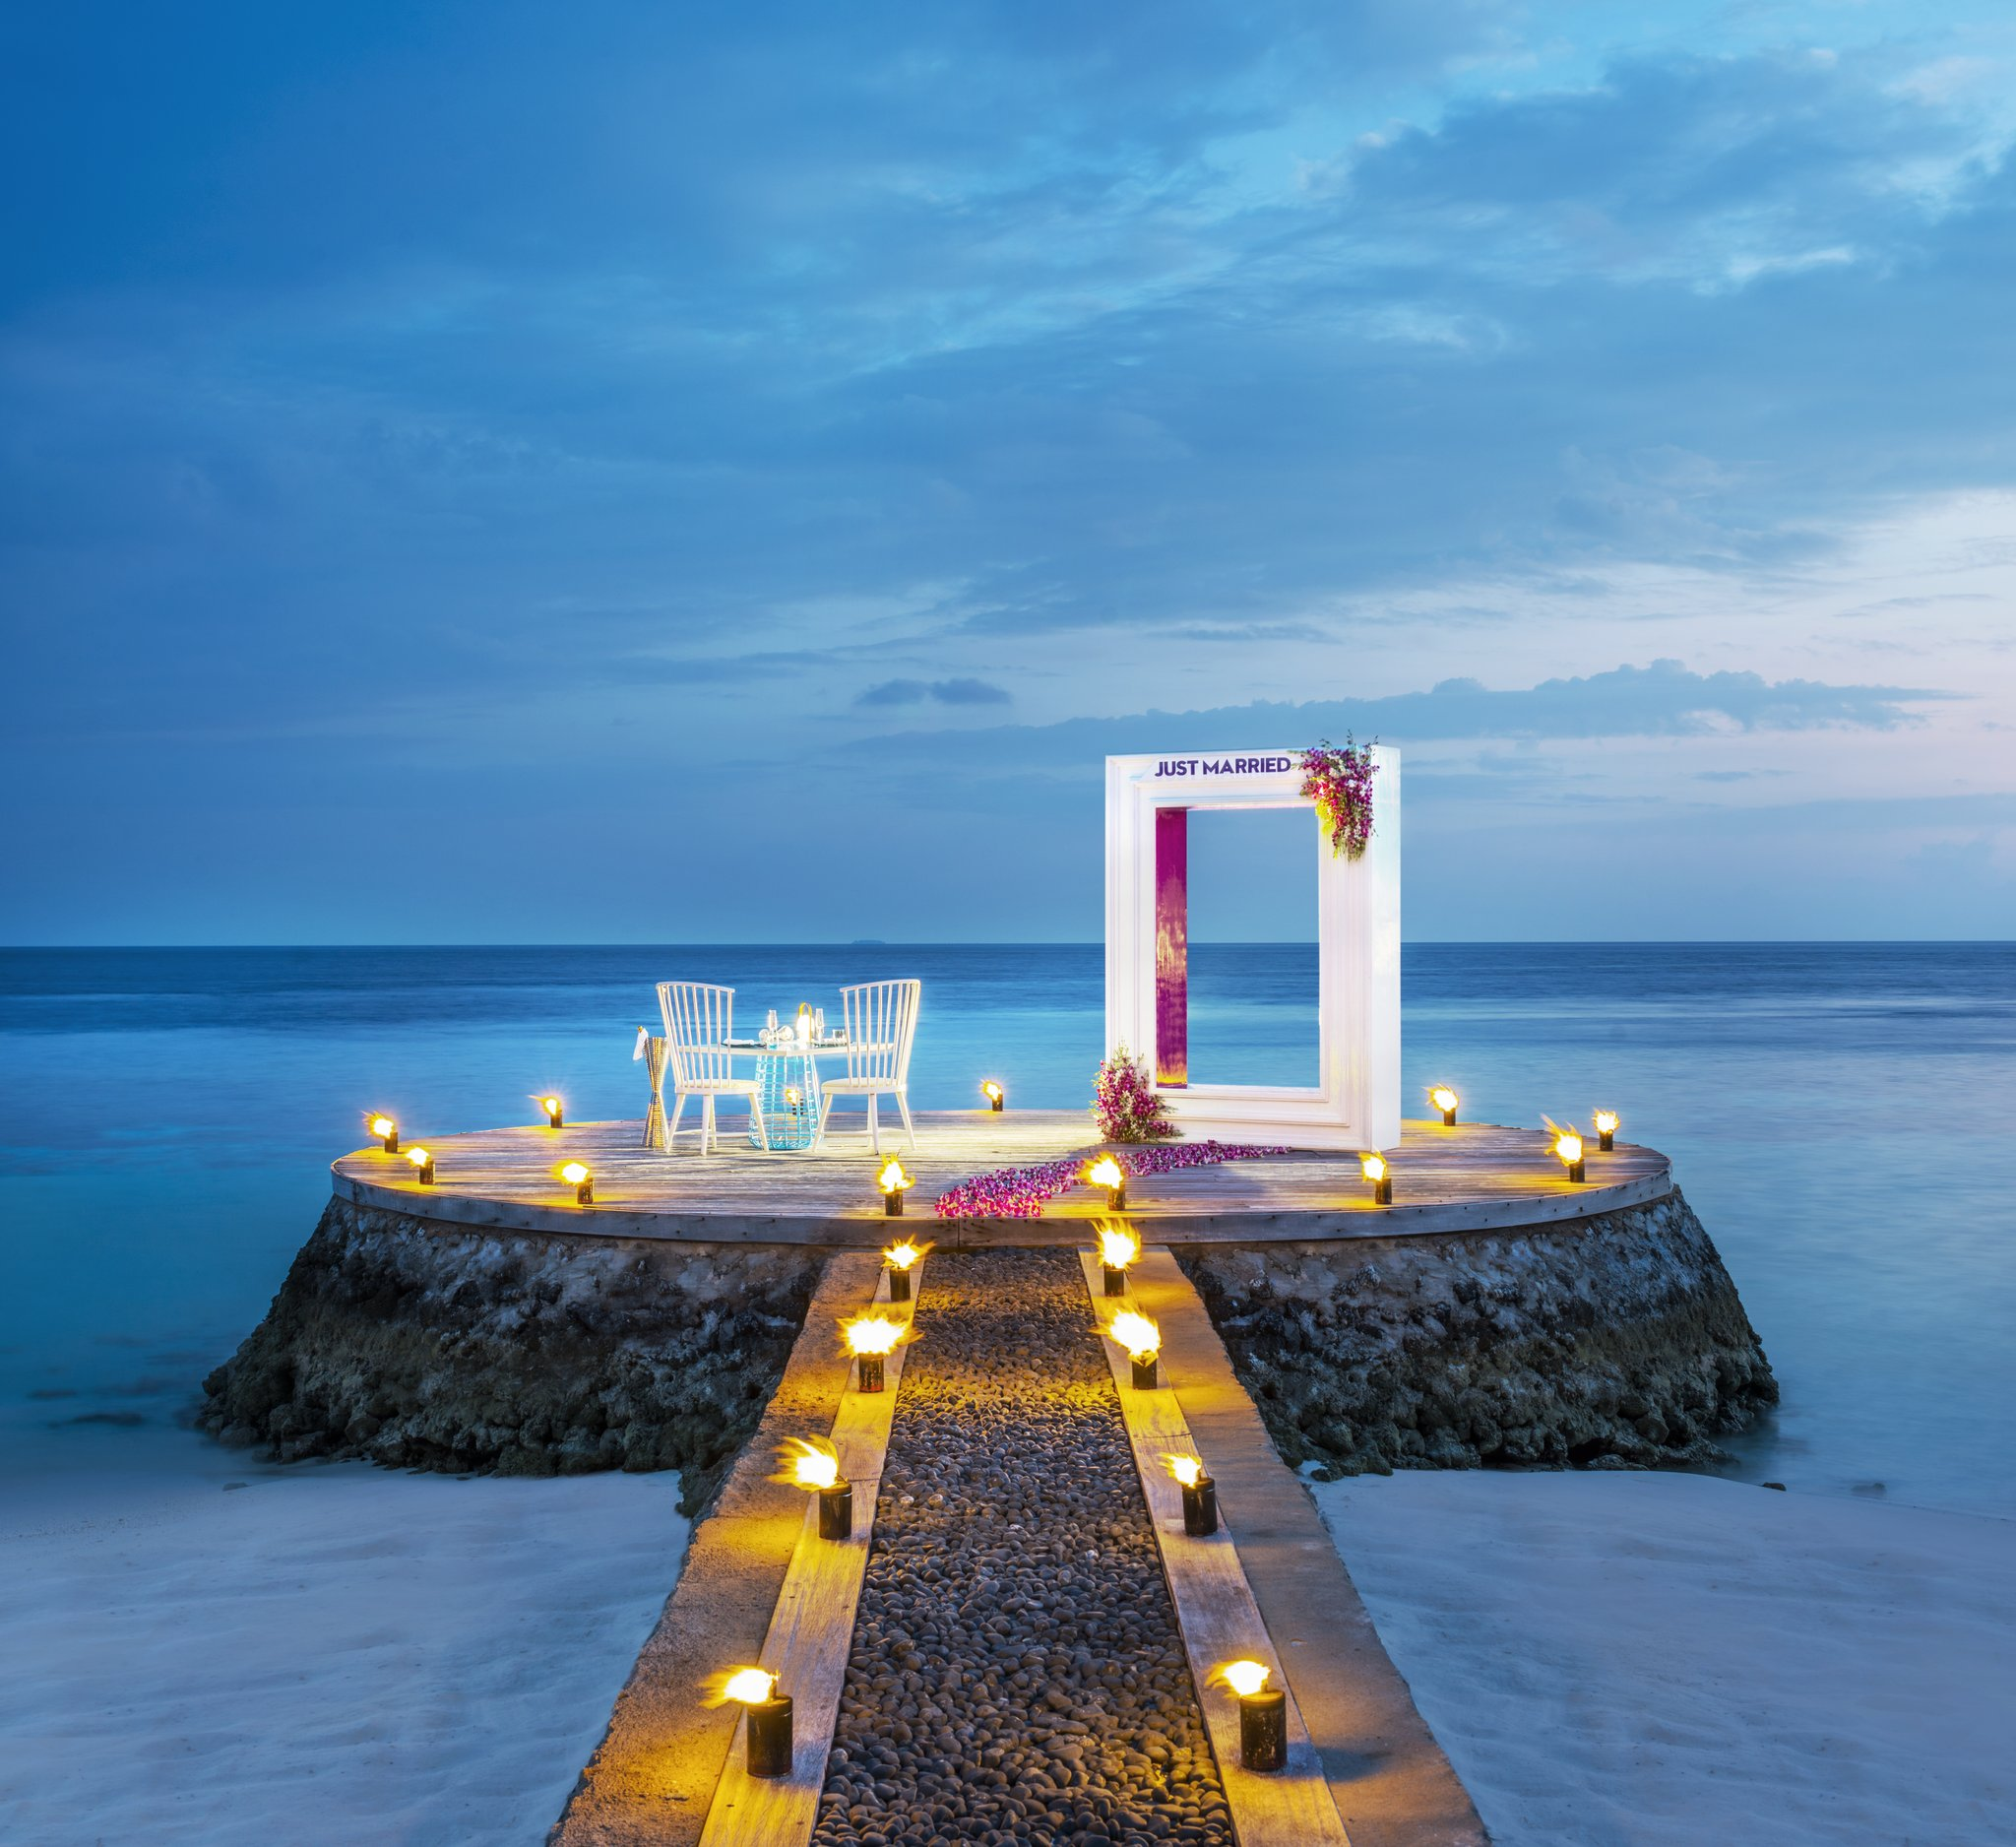 Dream wedding destination, the Maldives